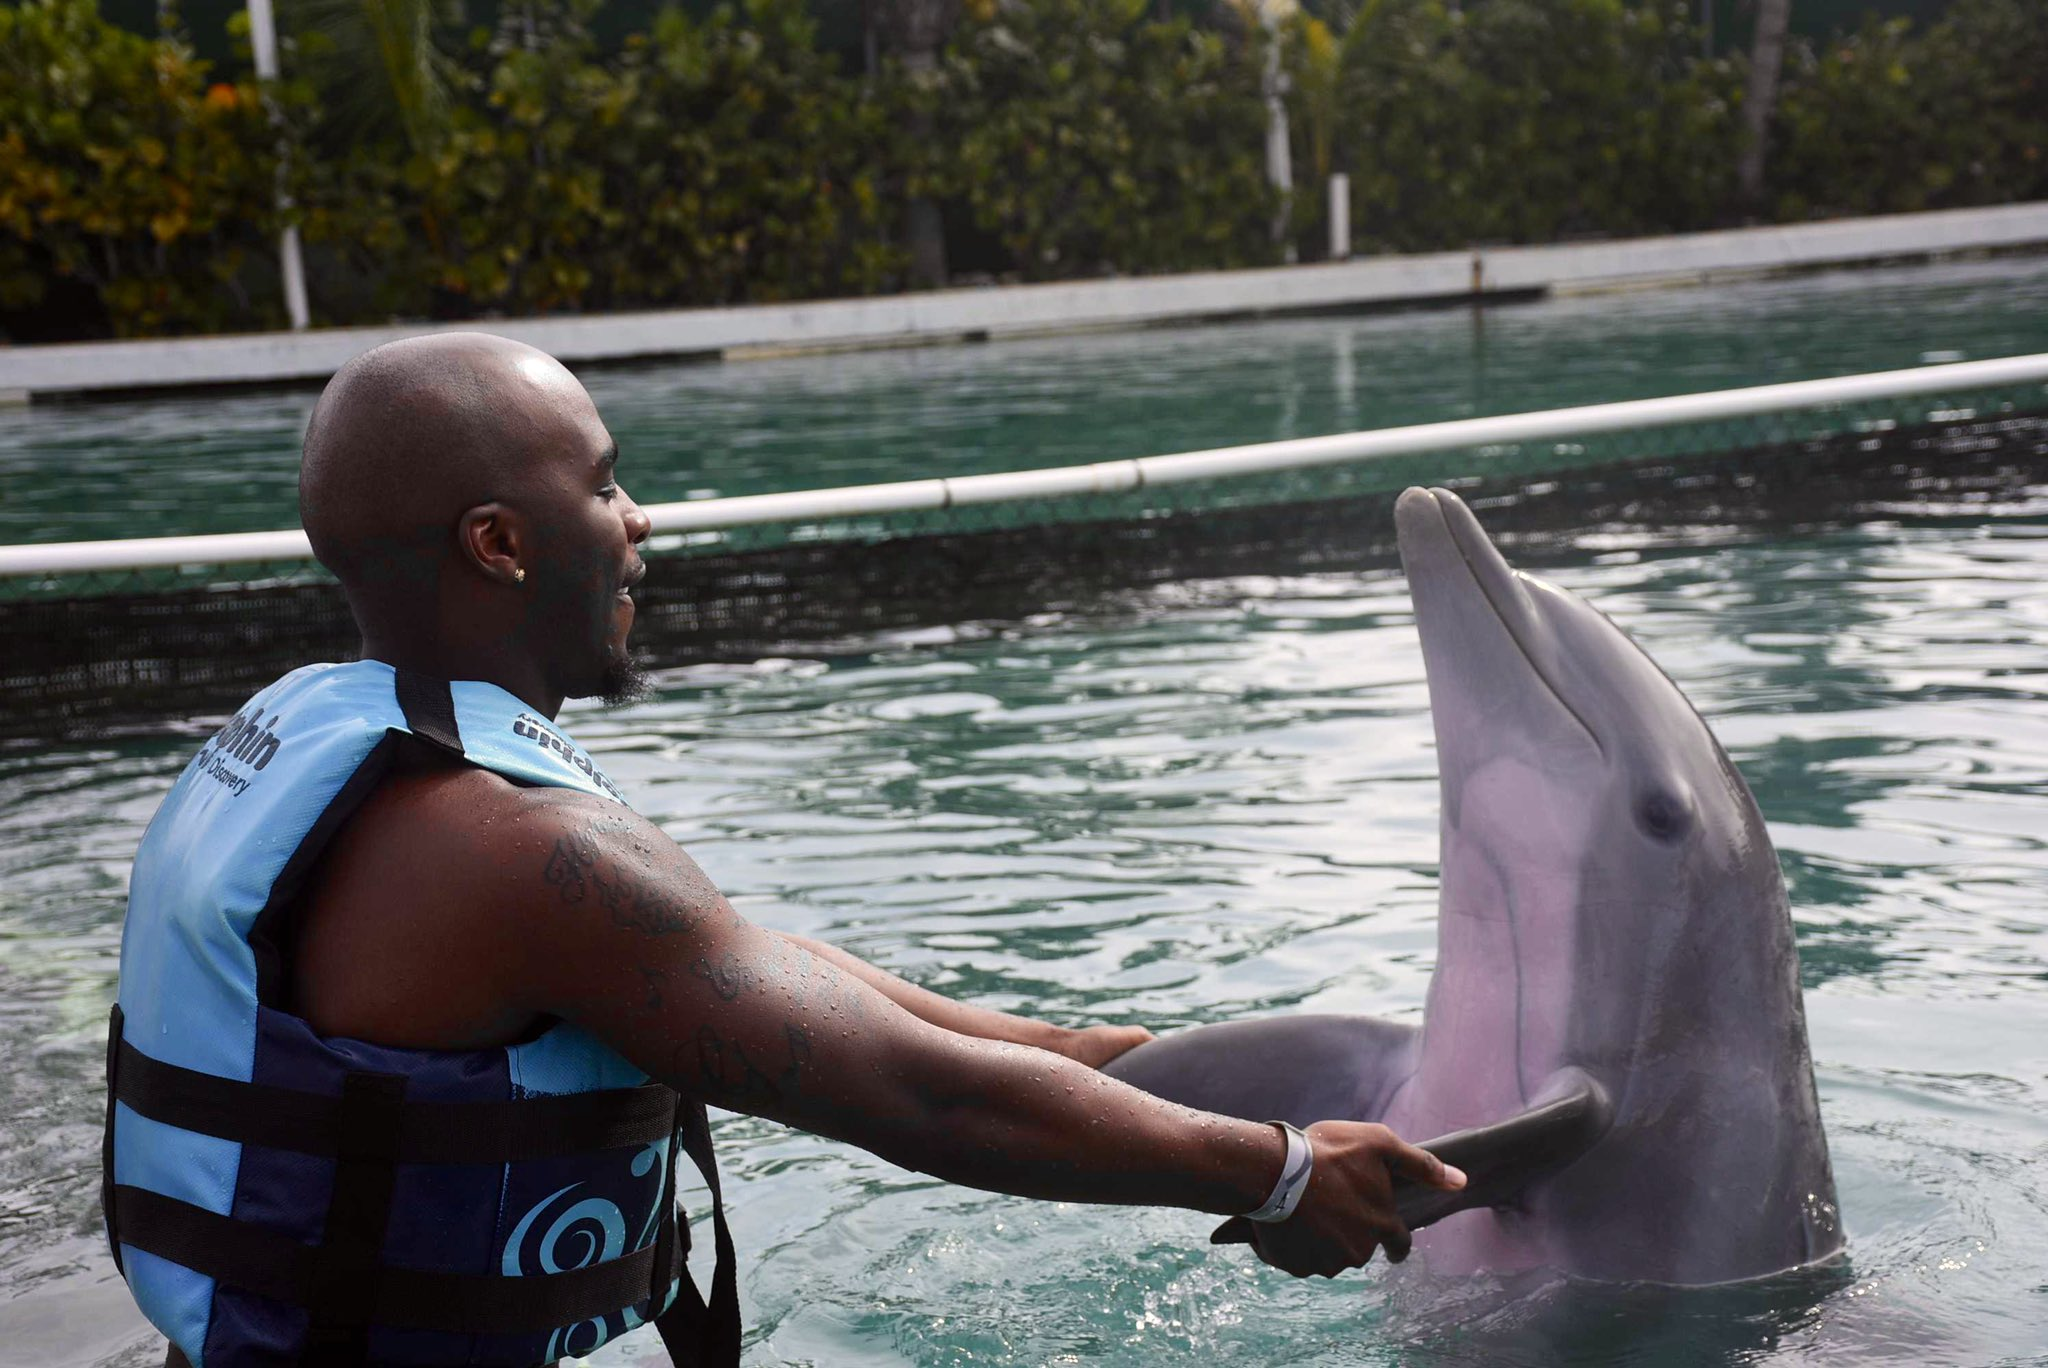 Ballgame On Twitter It S Jus Cinnamon And I Oh And Flipper Lol